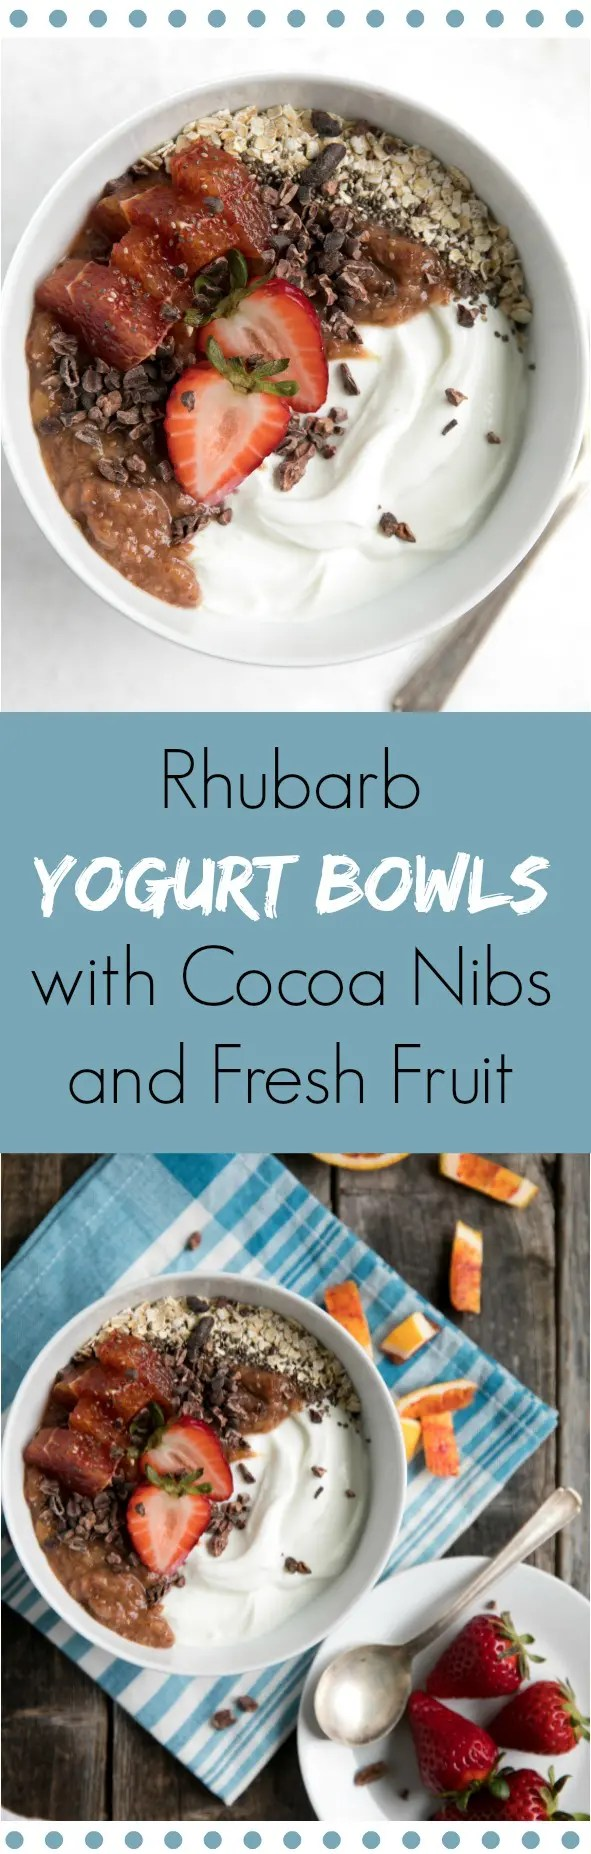 Rhubarb Yogurt Bowls with Cocoa Nibs and Fresh Fruit. #breakfast #healthyrecipes #dietideas #fruit #rhubarb